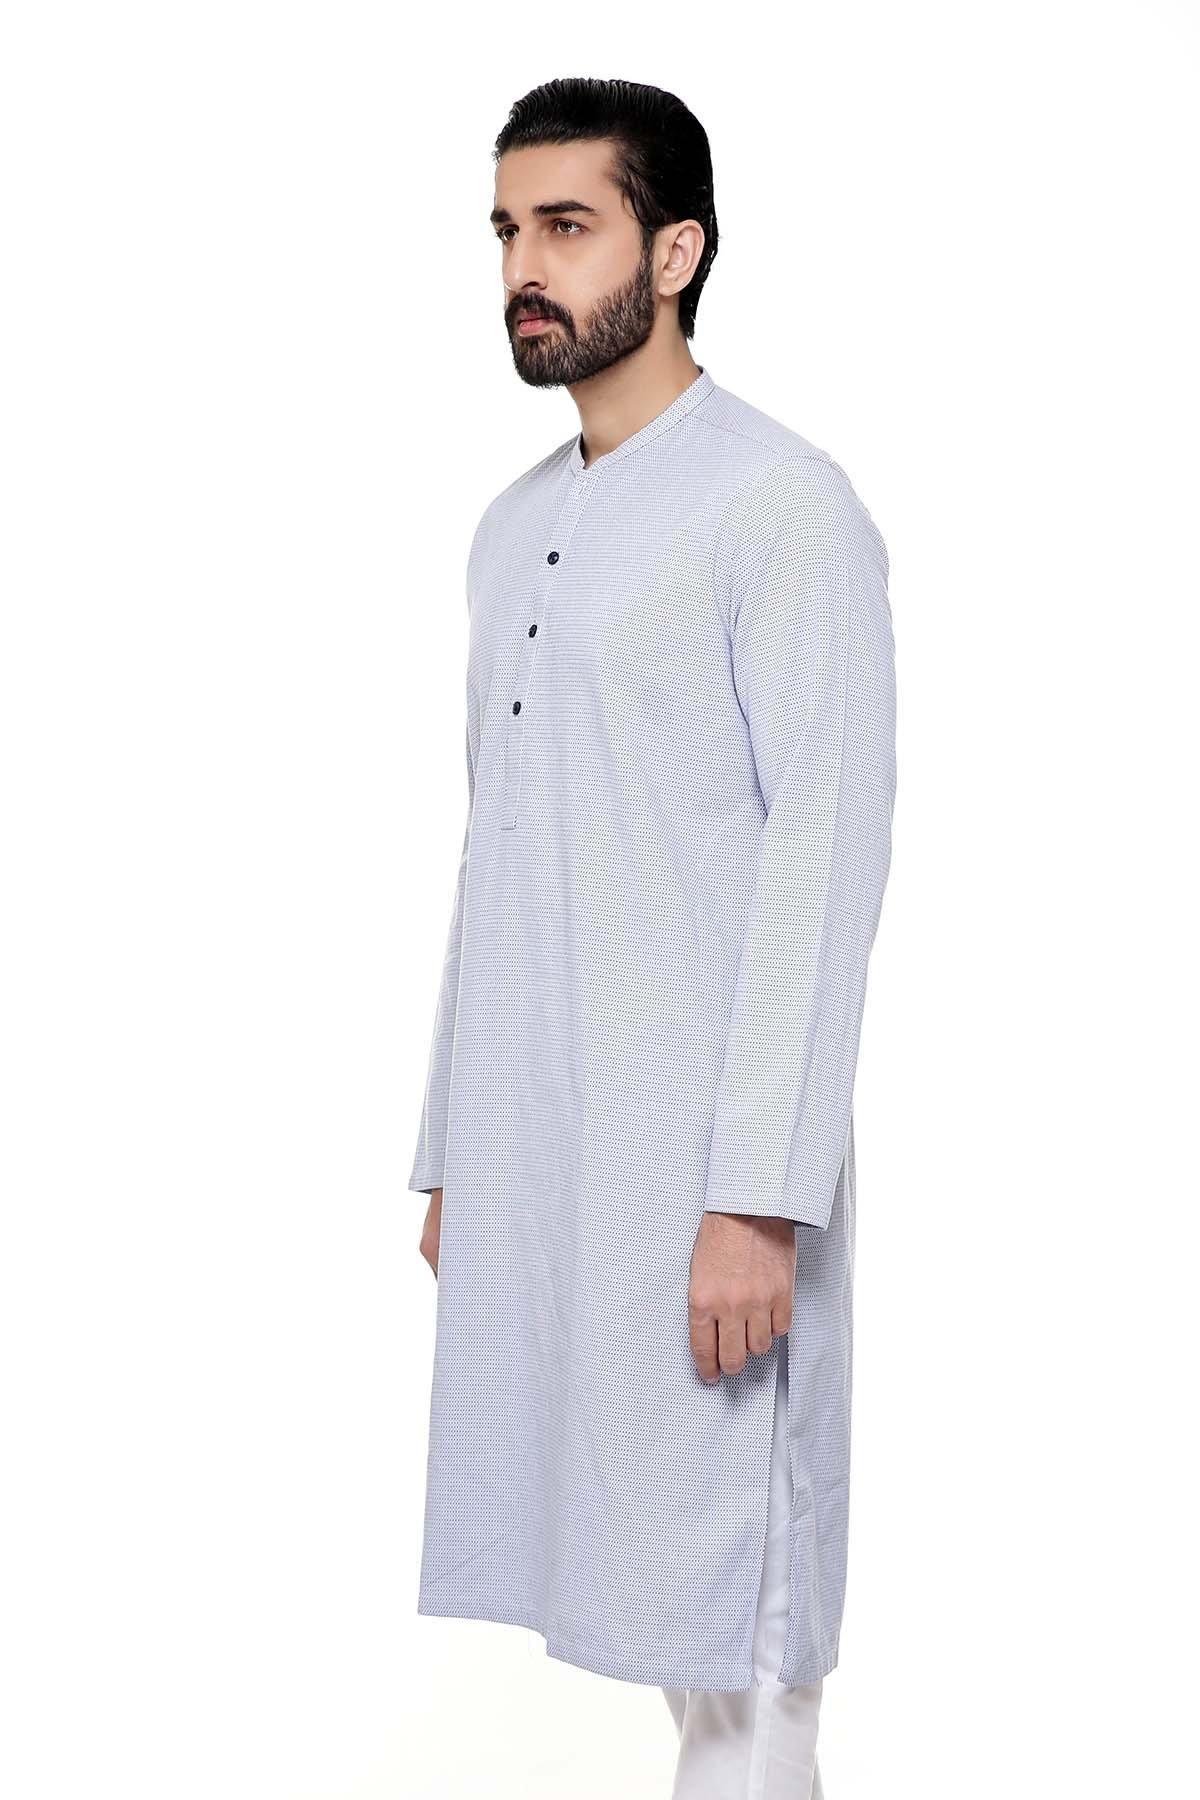 KURTA SMALL BAN COLLAR SKY BLUE - Charcoal - Afroz - FAIR